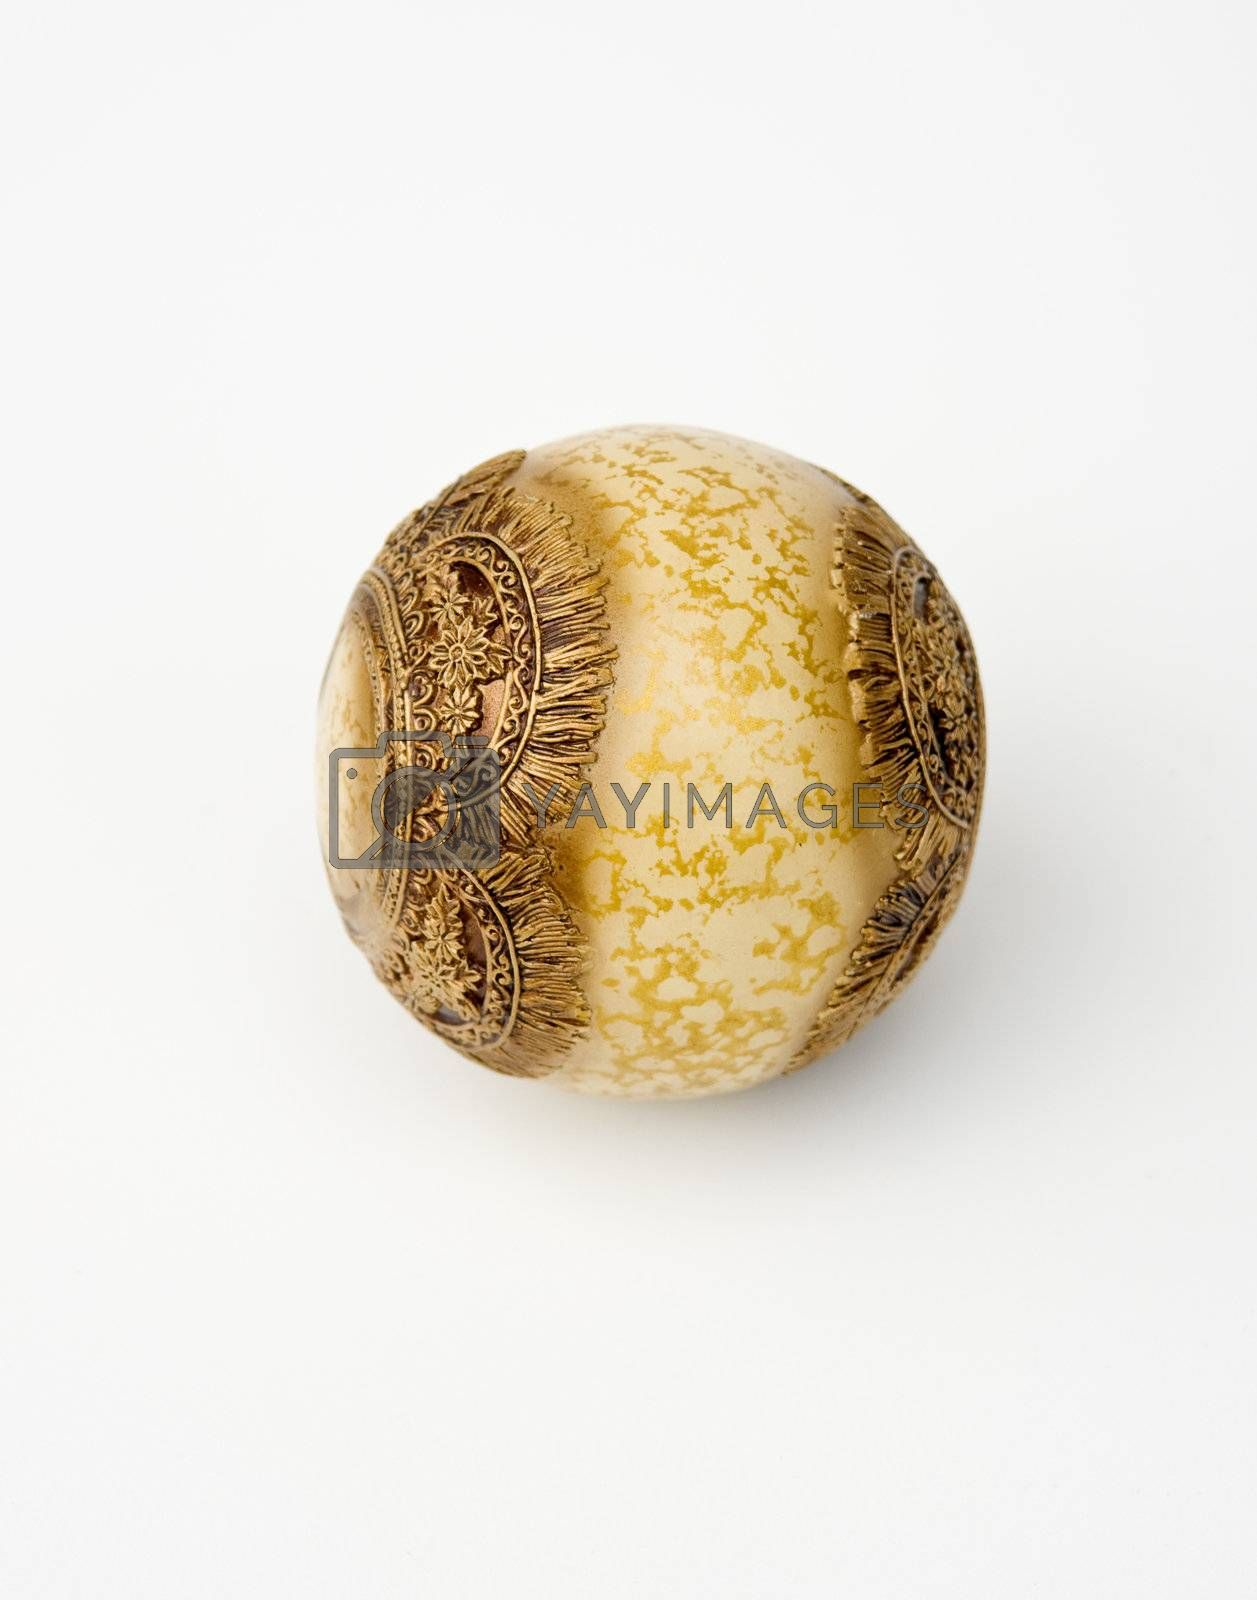 ball ornament whit gold texture on white background